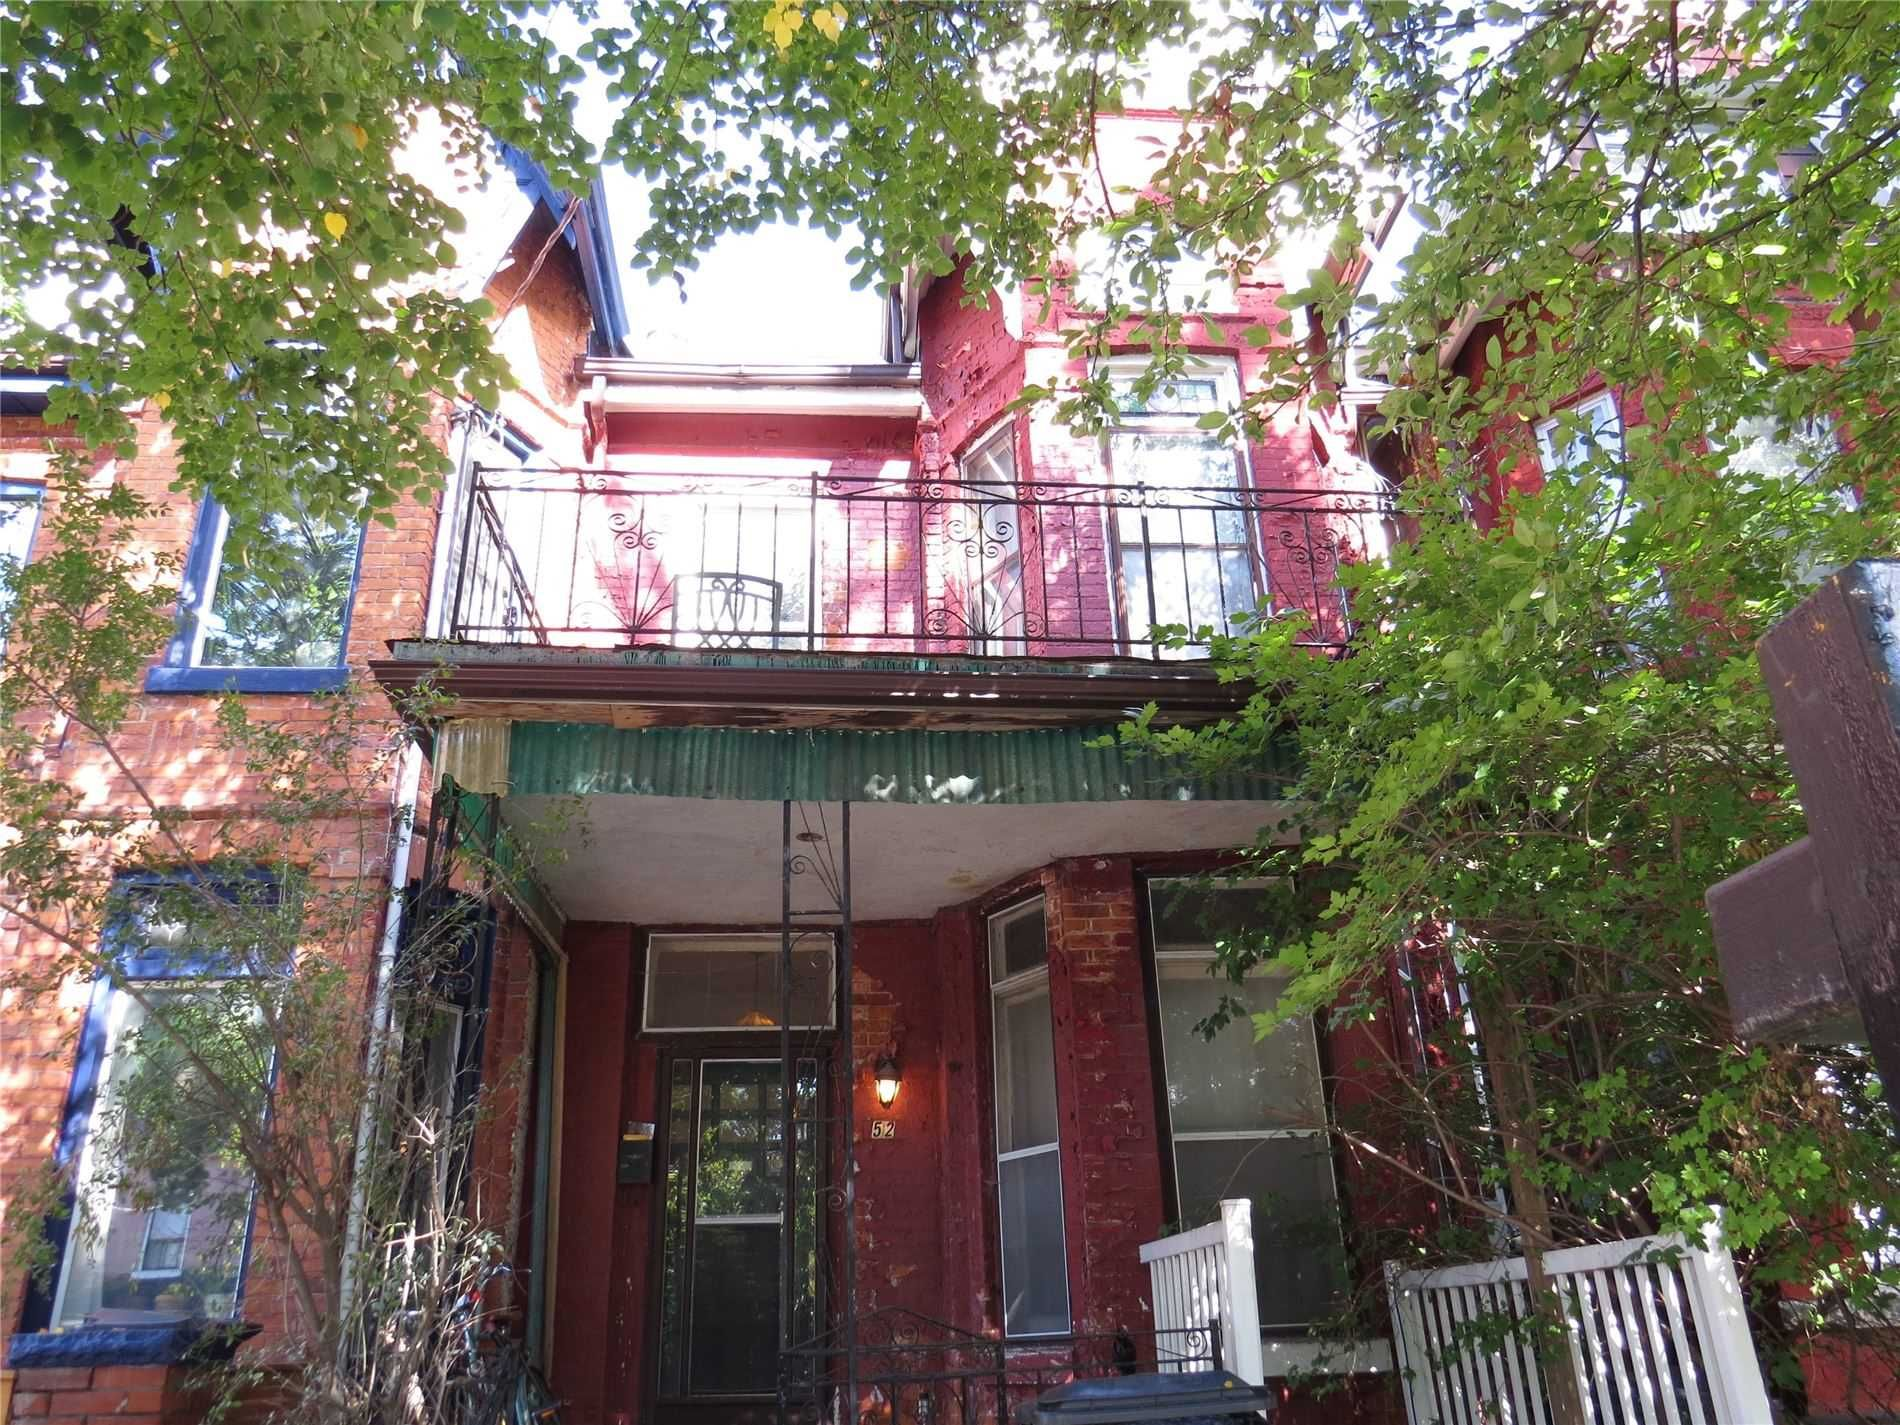 Main Photo: 52 Wales Avenue in Toronto: Kensington-Chinatown House (2 1/2 Storey) for sale (Toronto C01)  : MLS®# C4942139